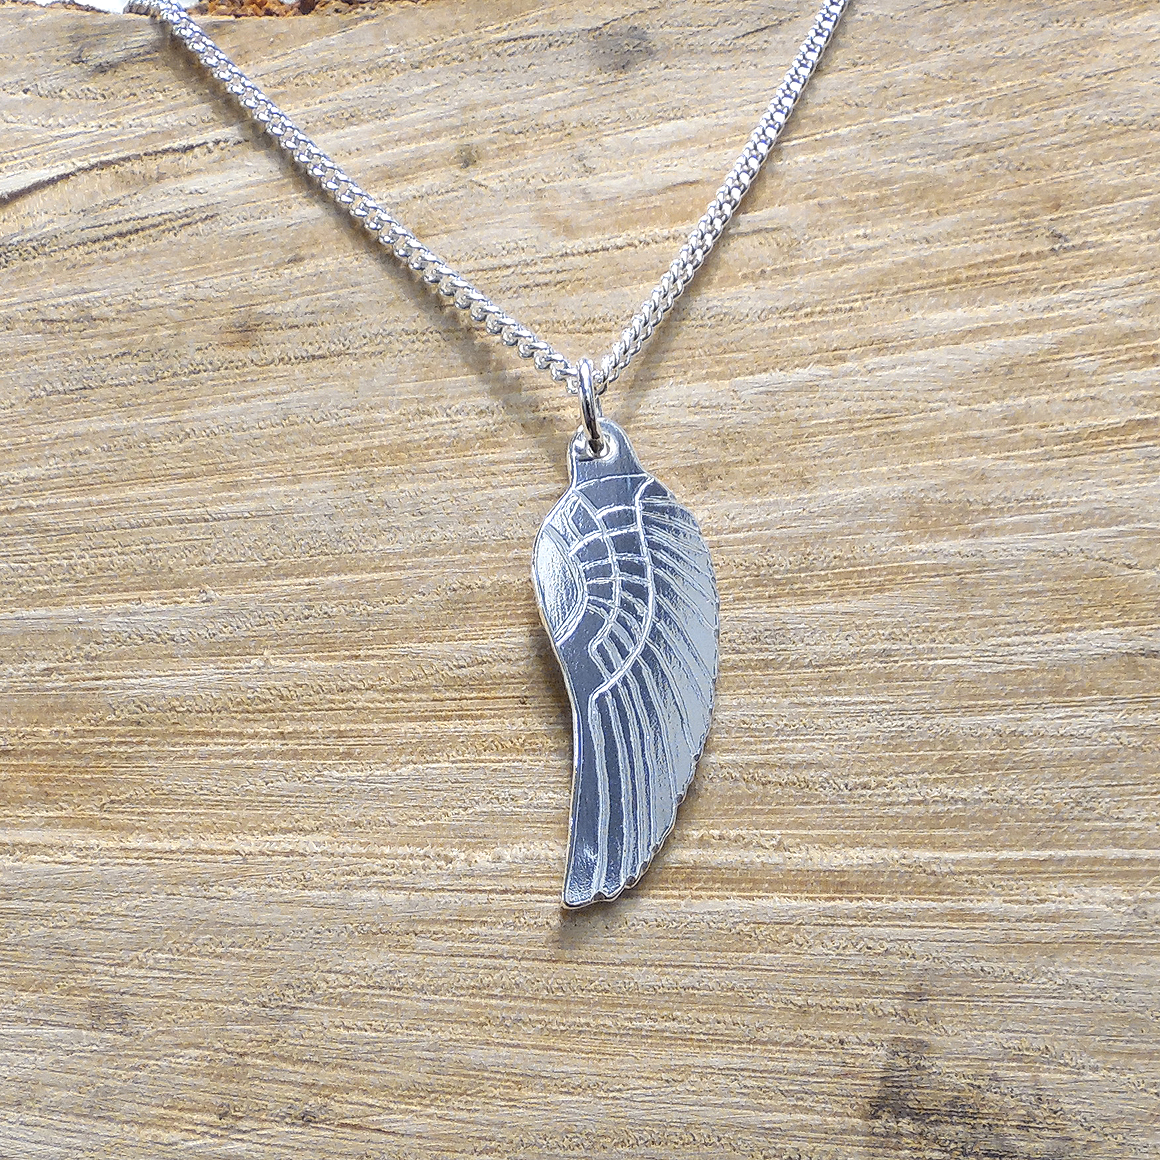 jewellery rebel image pendant from sabo at thomas heart wing silver